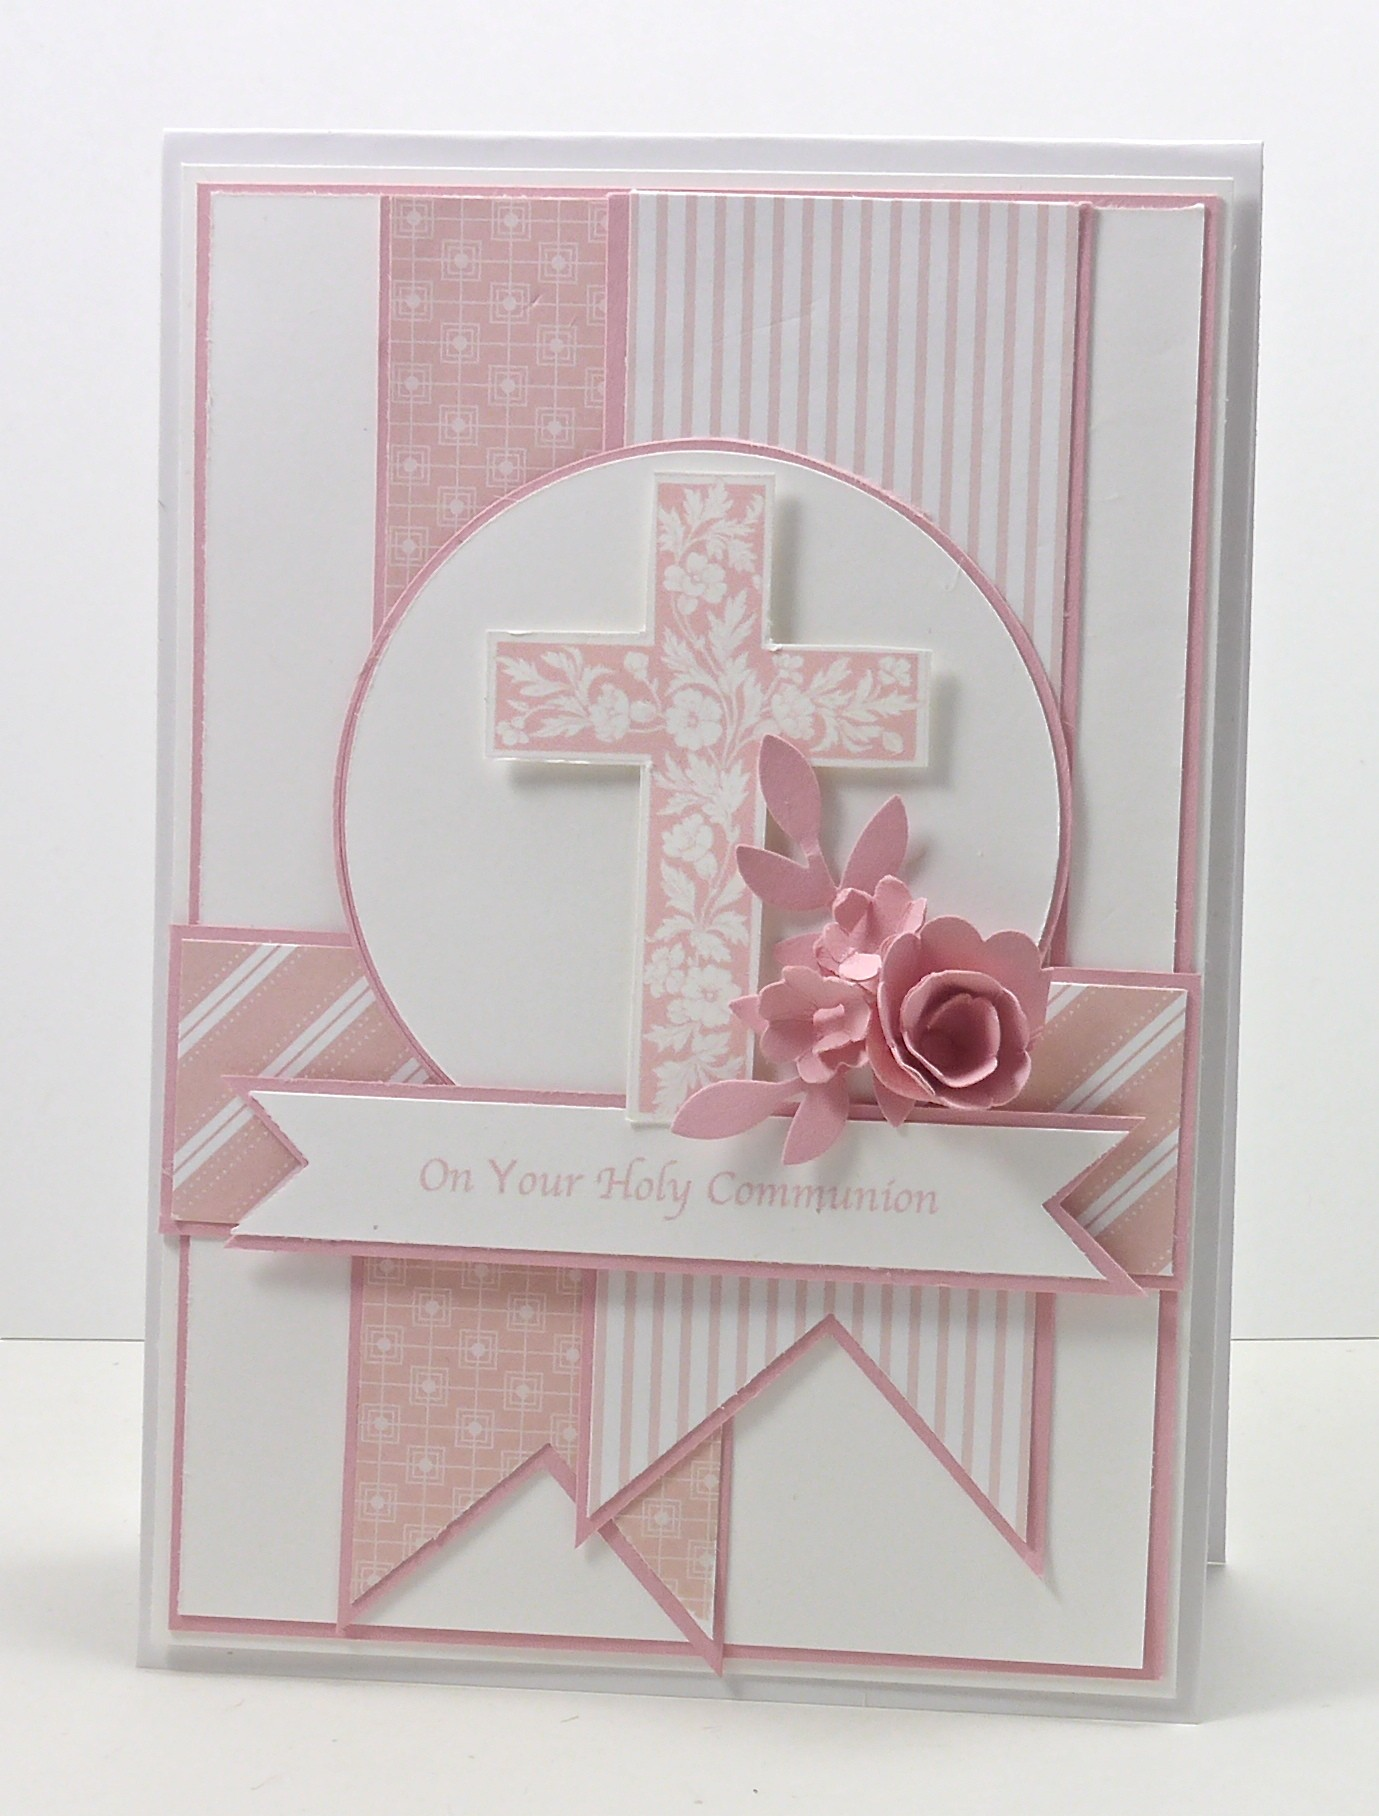 Quince Invites is luxury invitation layout